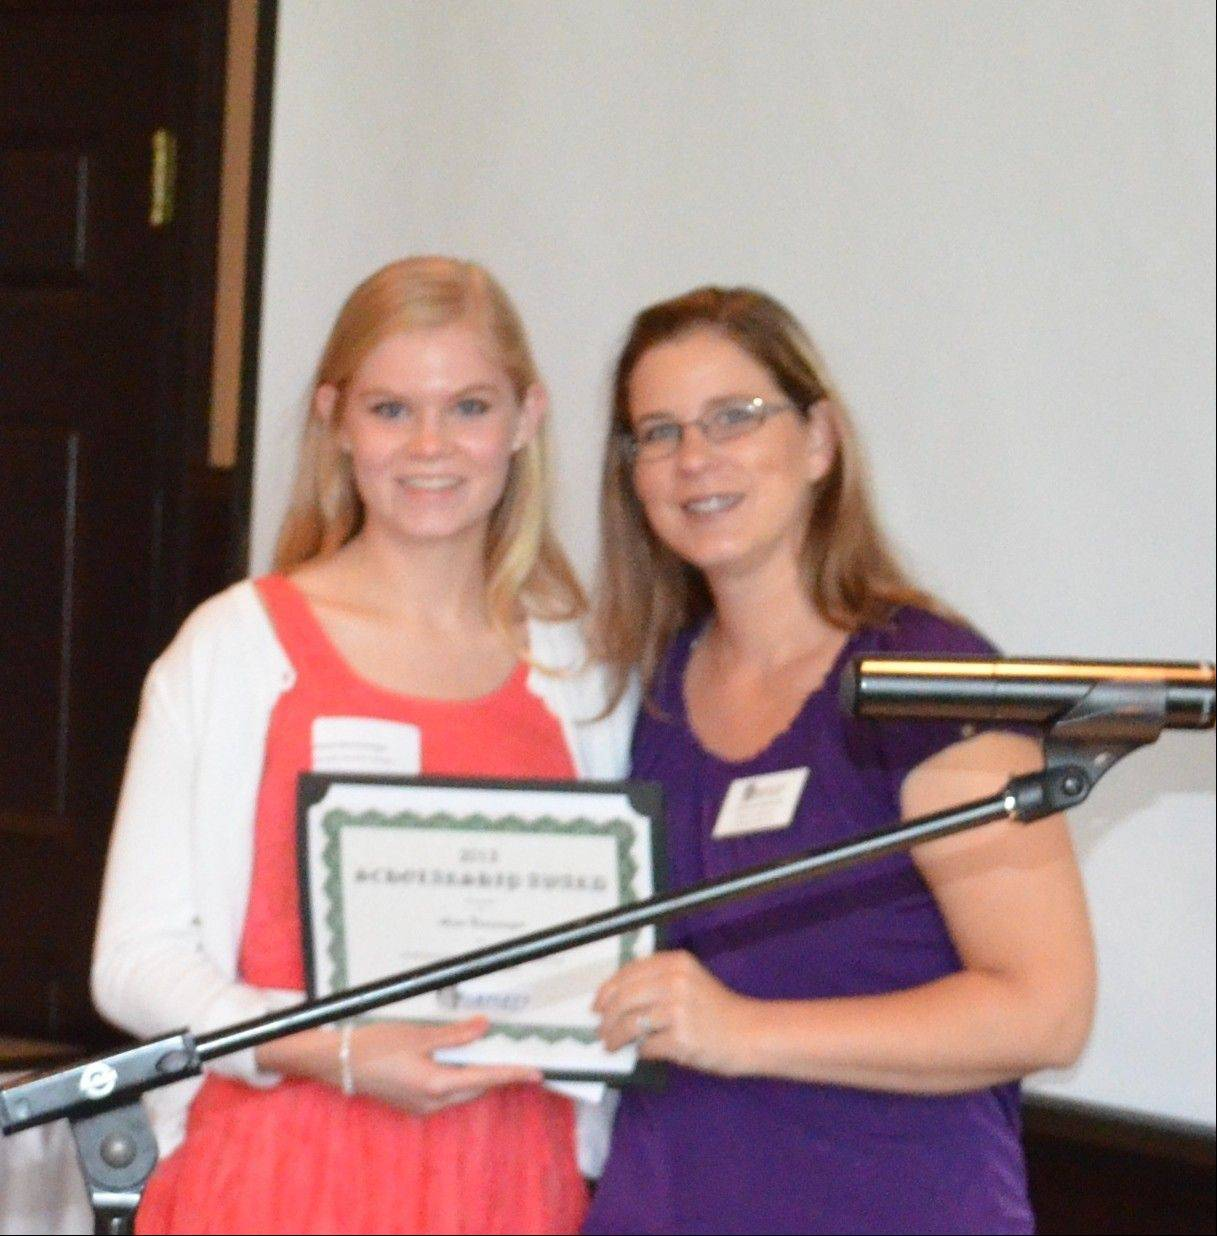 Bartlett Chamber of Commerce scholarship winner Alena Neuswanger, left, with Nicole Ohlson, Bartlett Chamber of Commerce board member and owner of Jumphouse Rental 4 Less.